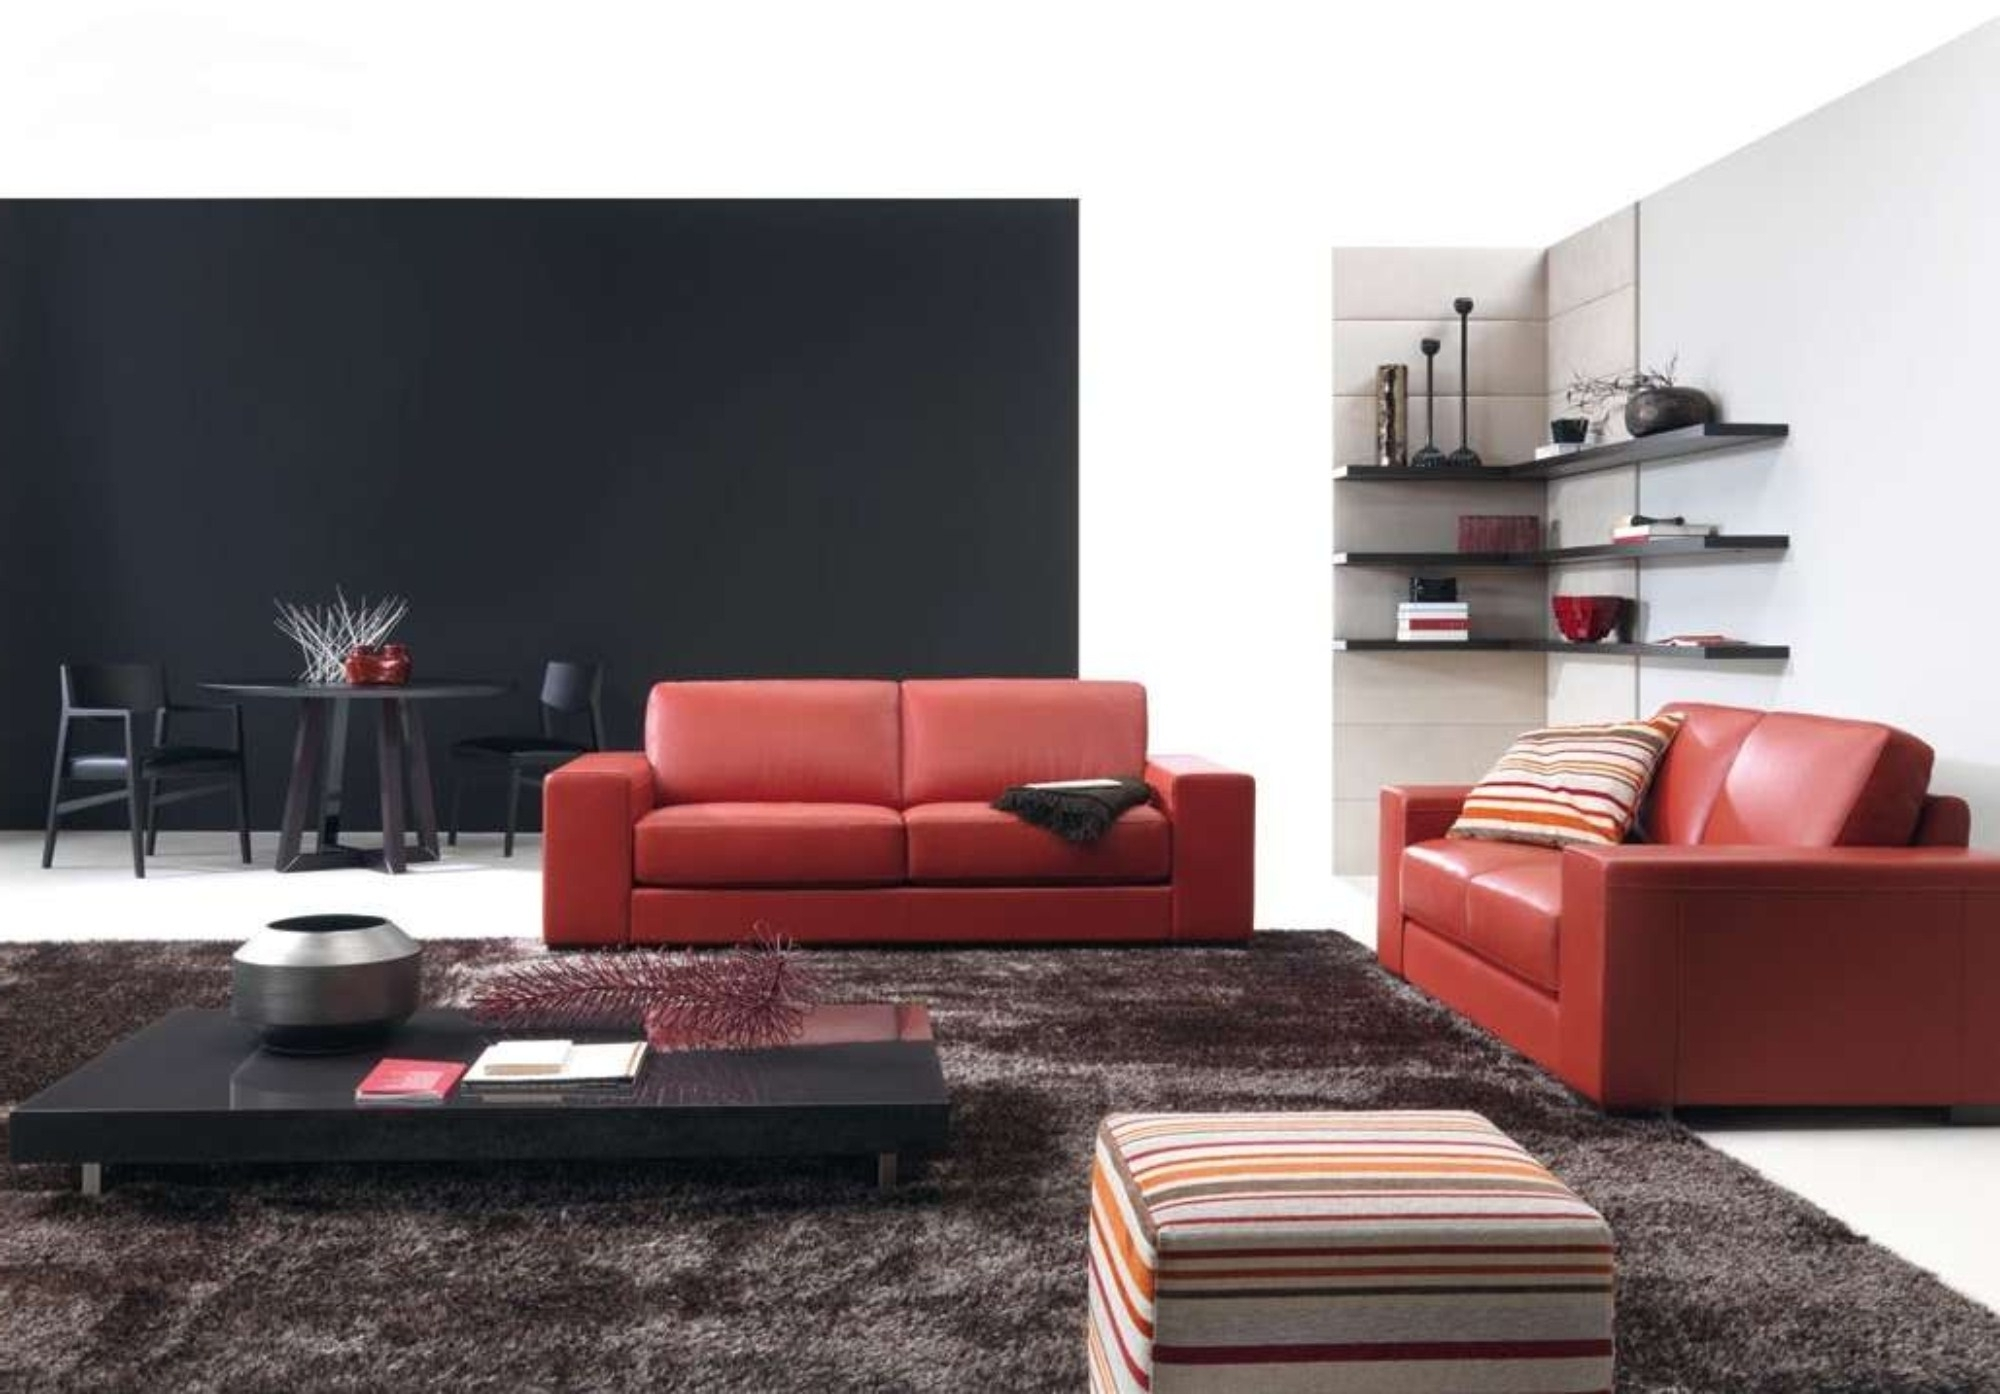 Decorating Ideas Living Room With Red Leather Sofa And Black Wood With Recent Red Leather Couches For Living Room (View 17 of 20)